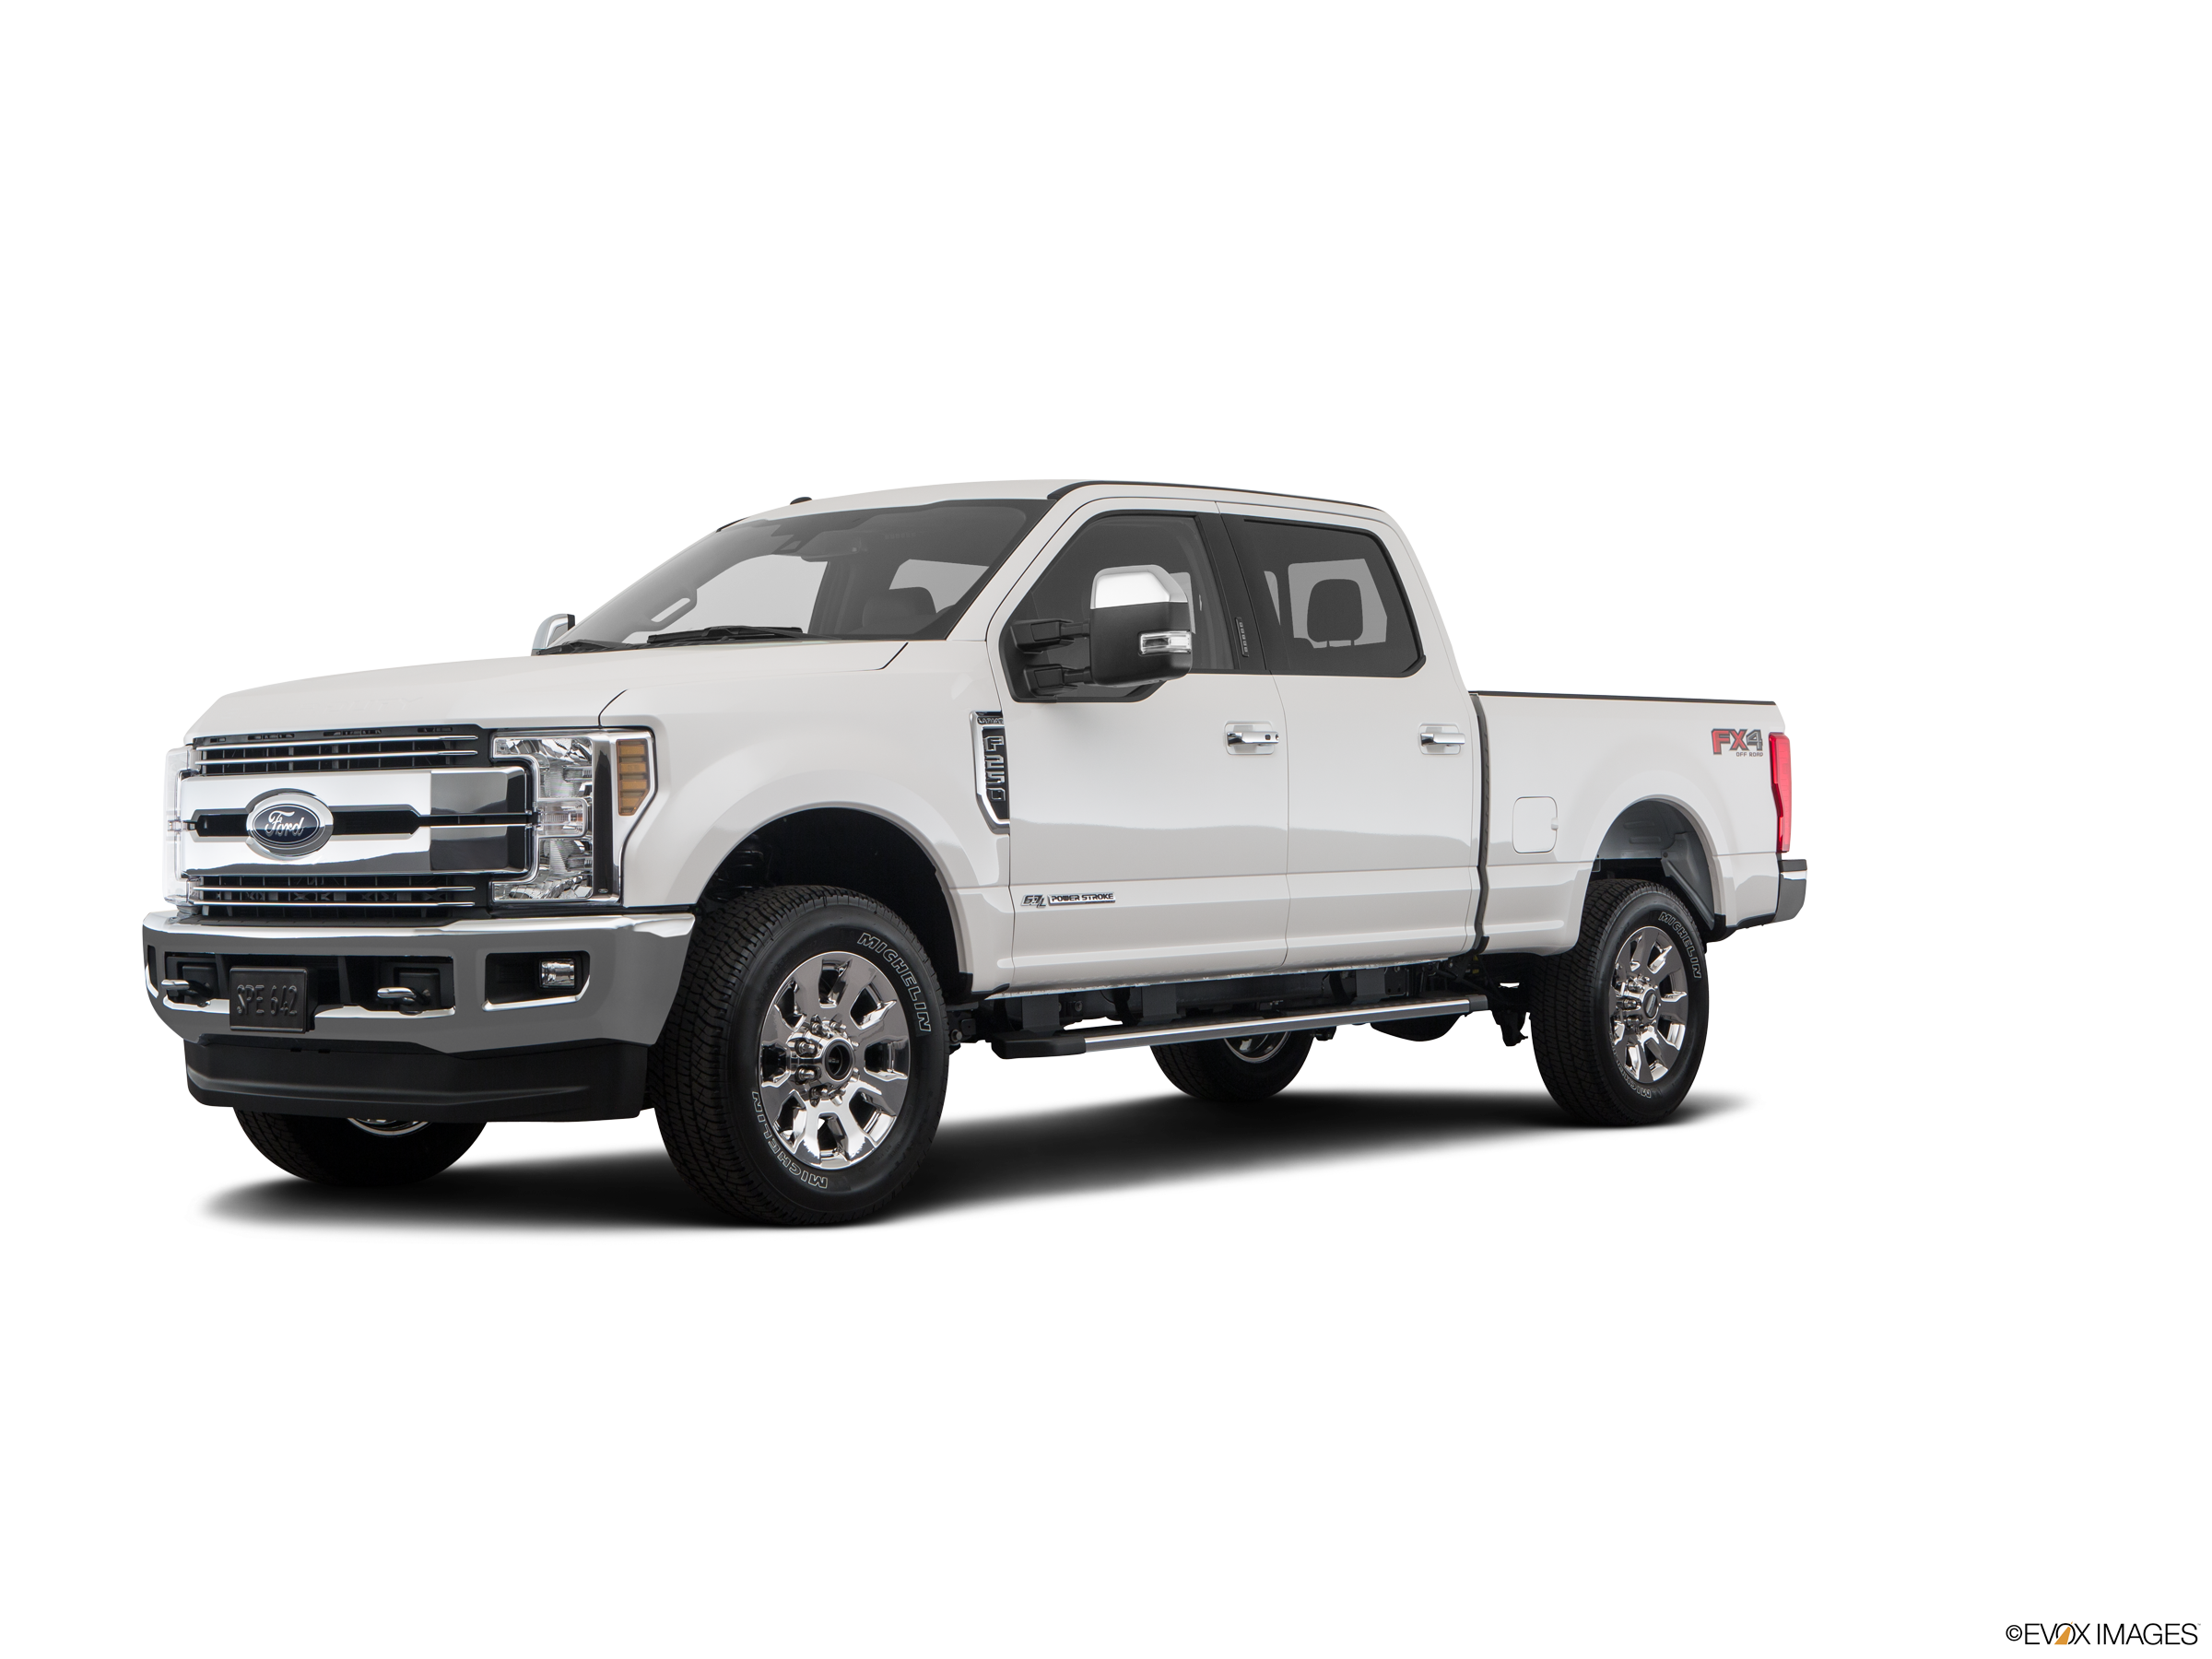 Ford F250 8 Foot Bed For Sale >> 2019 Ford F250 Super Duty Crew Cab Pricing Reviews